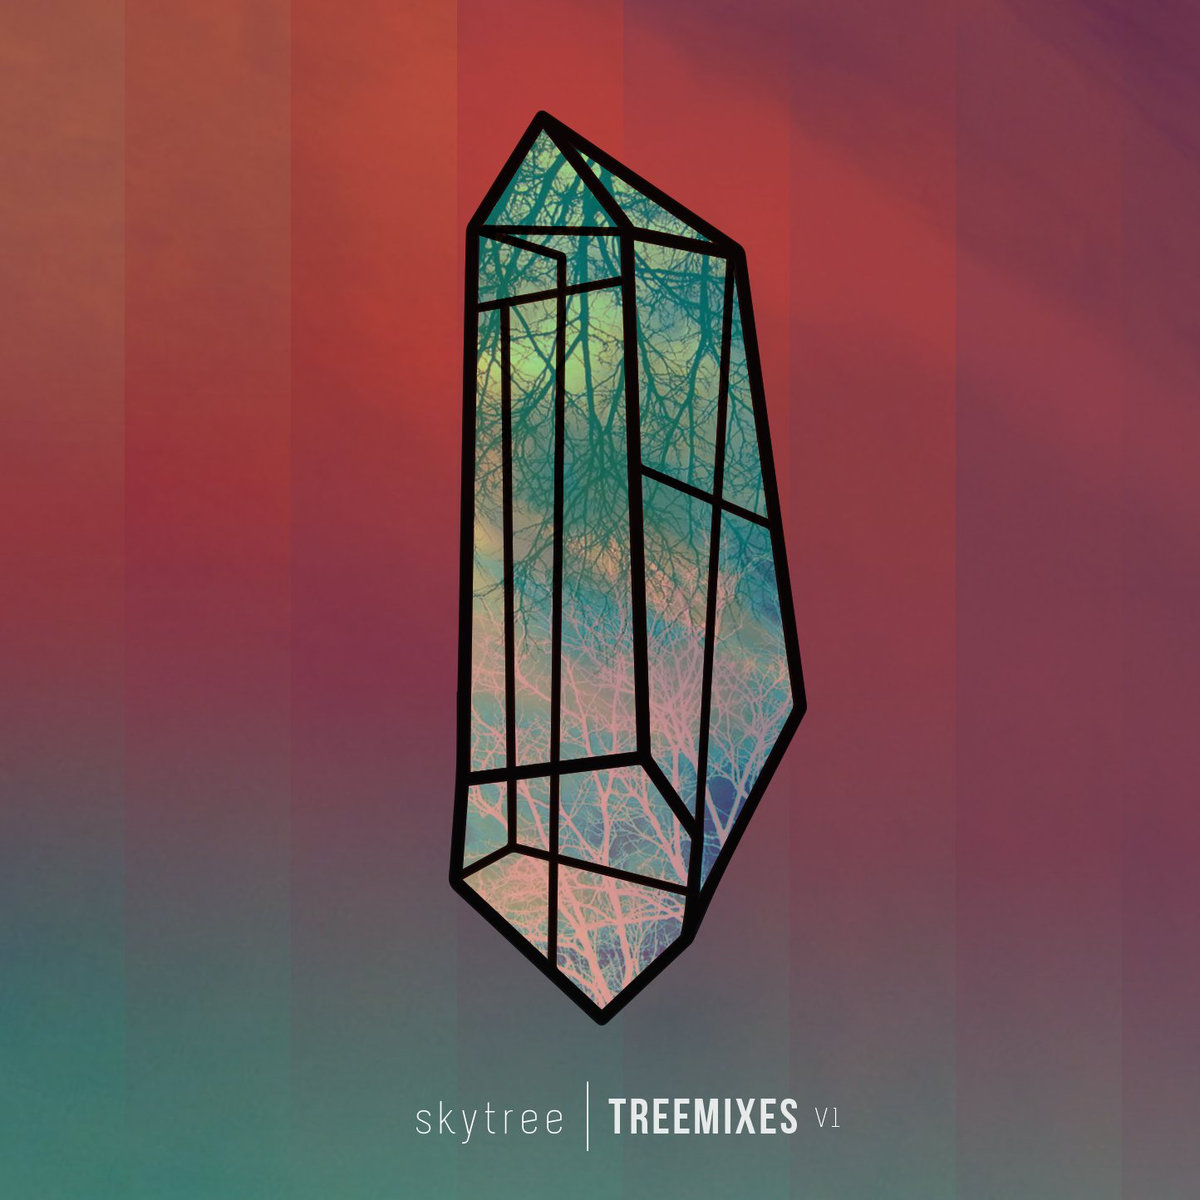 Skytree - Earth Sing (Biolumigen's Starseed remix) @ 'Treemixes V1' album (Austin)